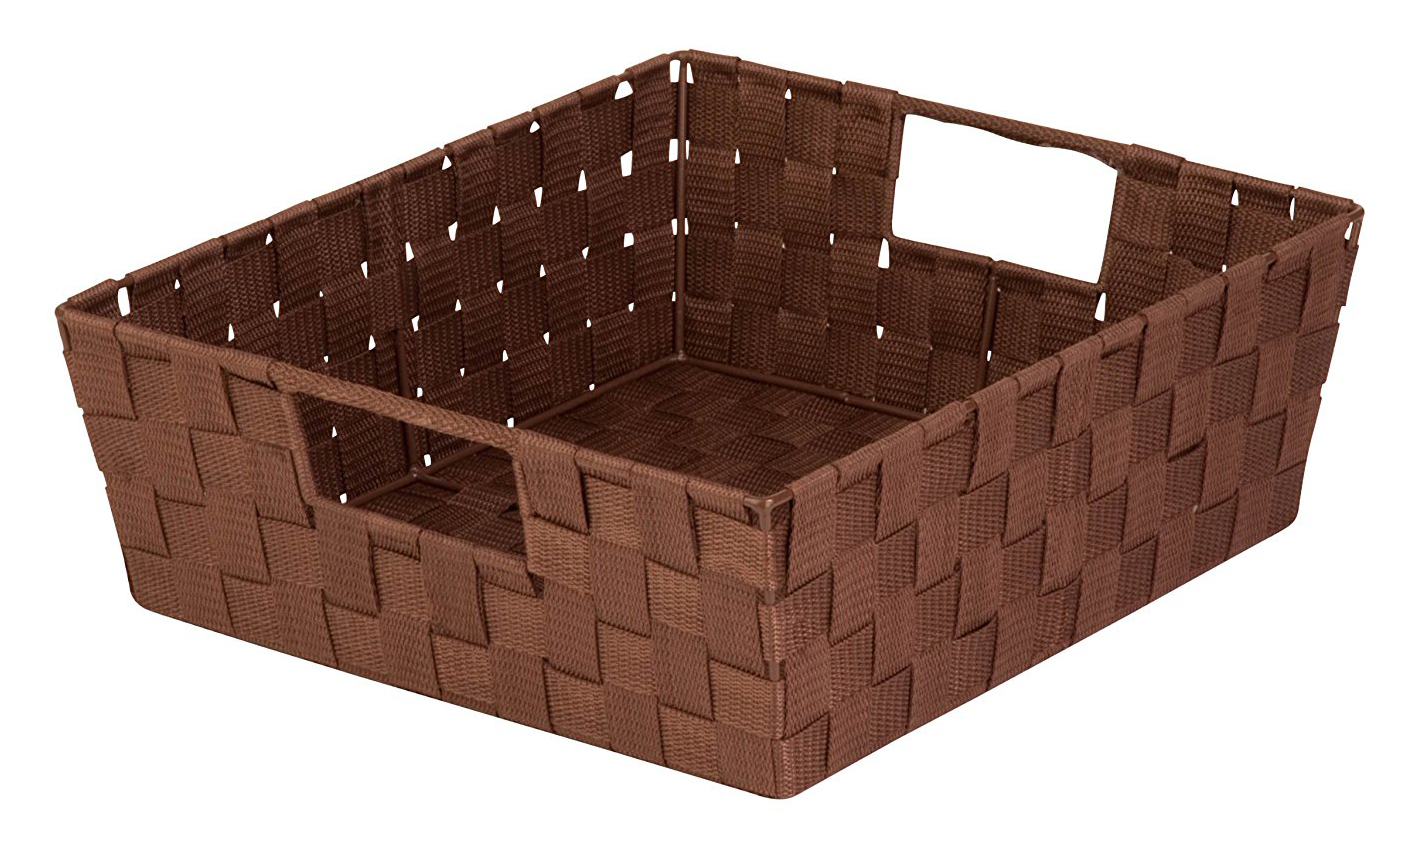 Honey-Can-Do STO-03049 Double Woven Shelf Tote With Handle, 13 in L x 15 in W x 5 in H, Brown